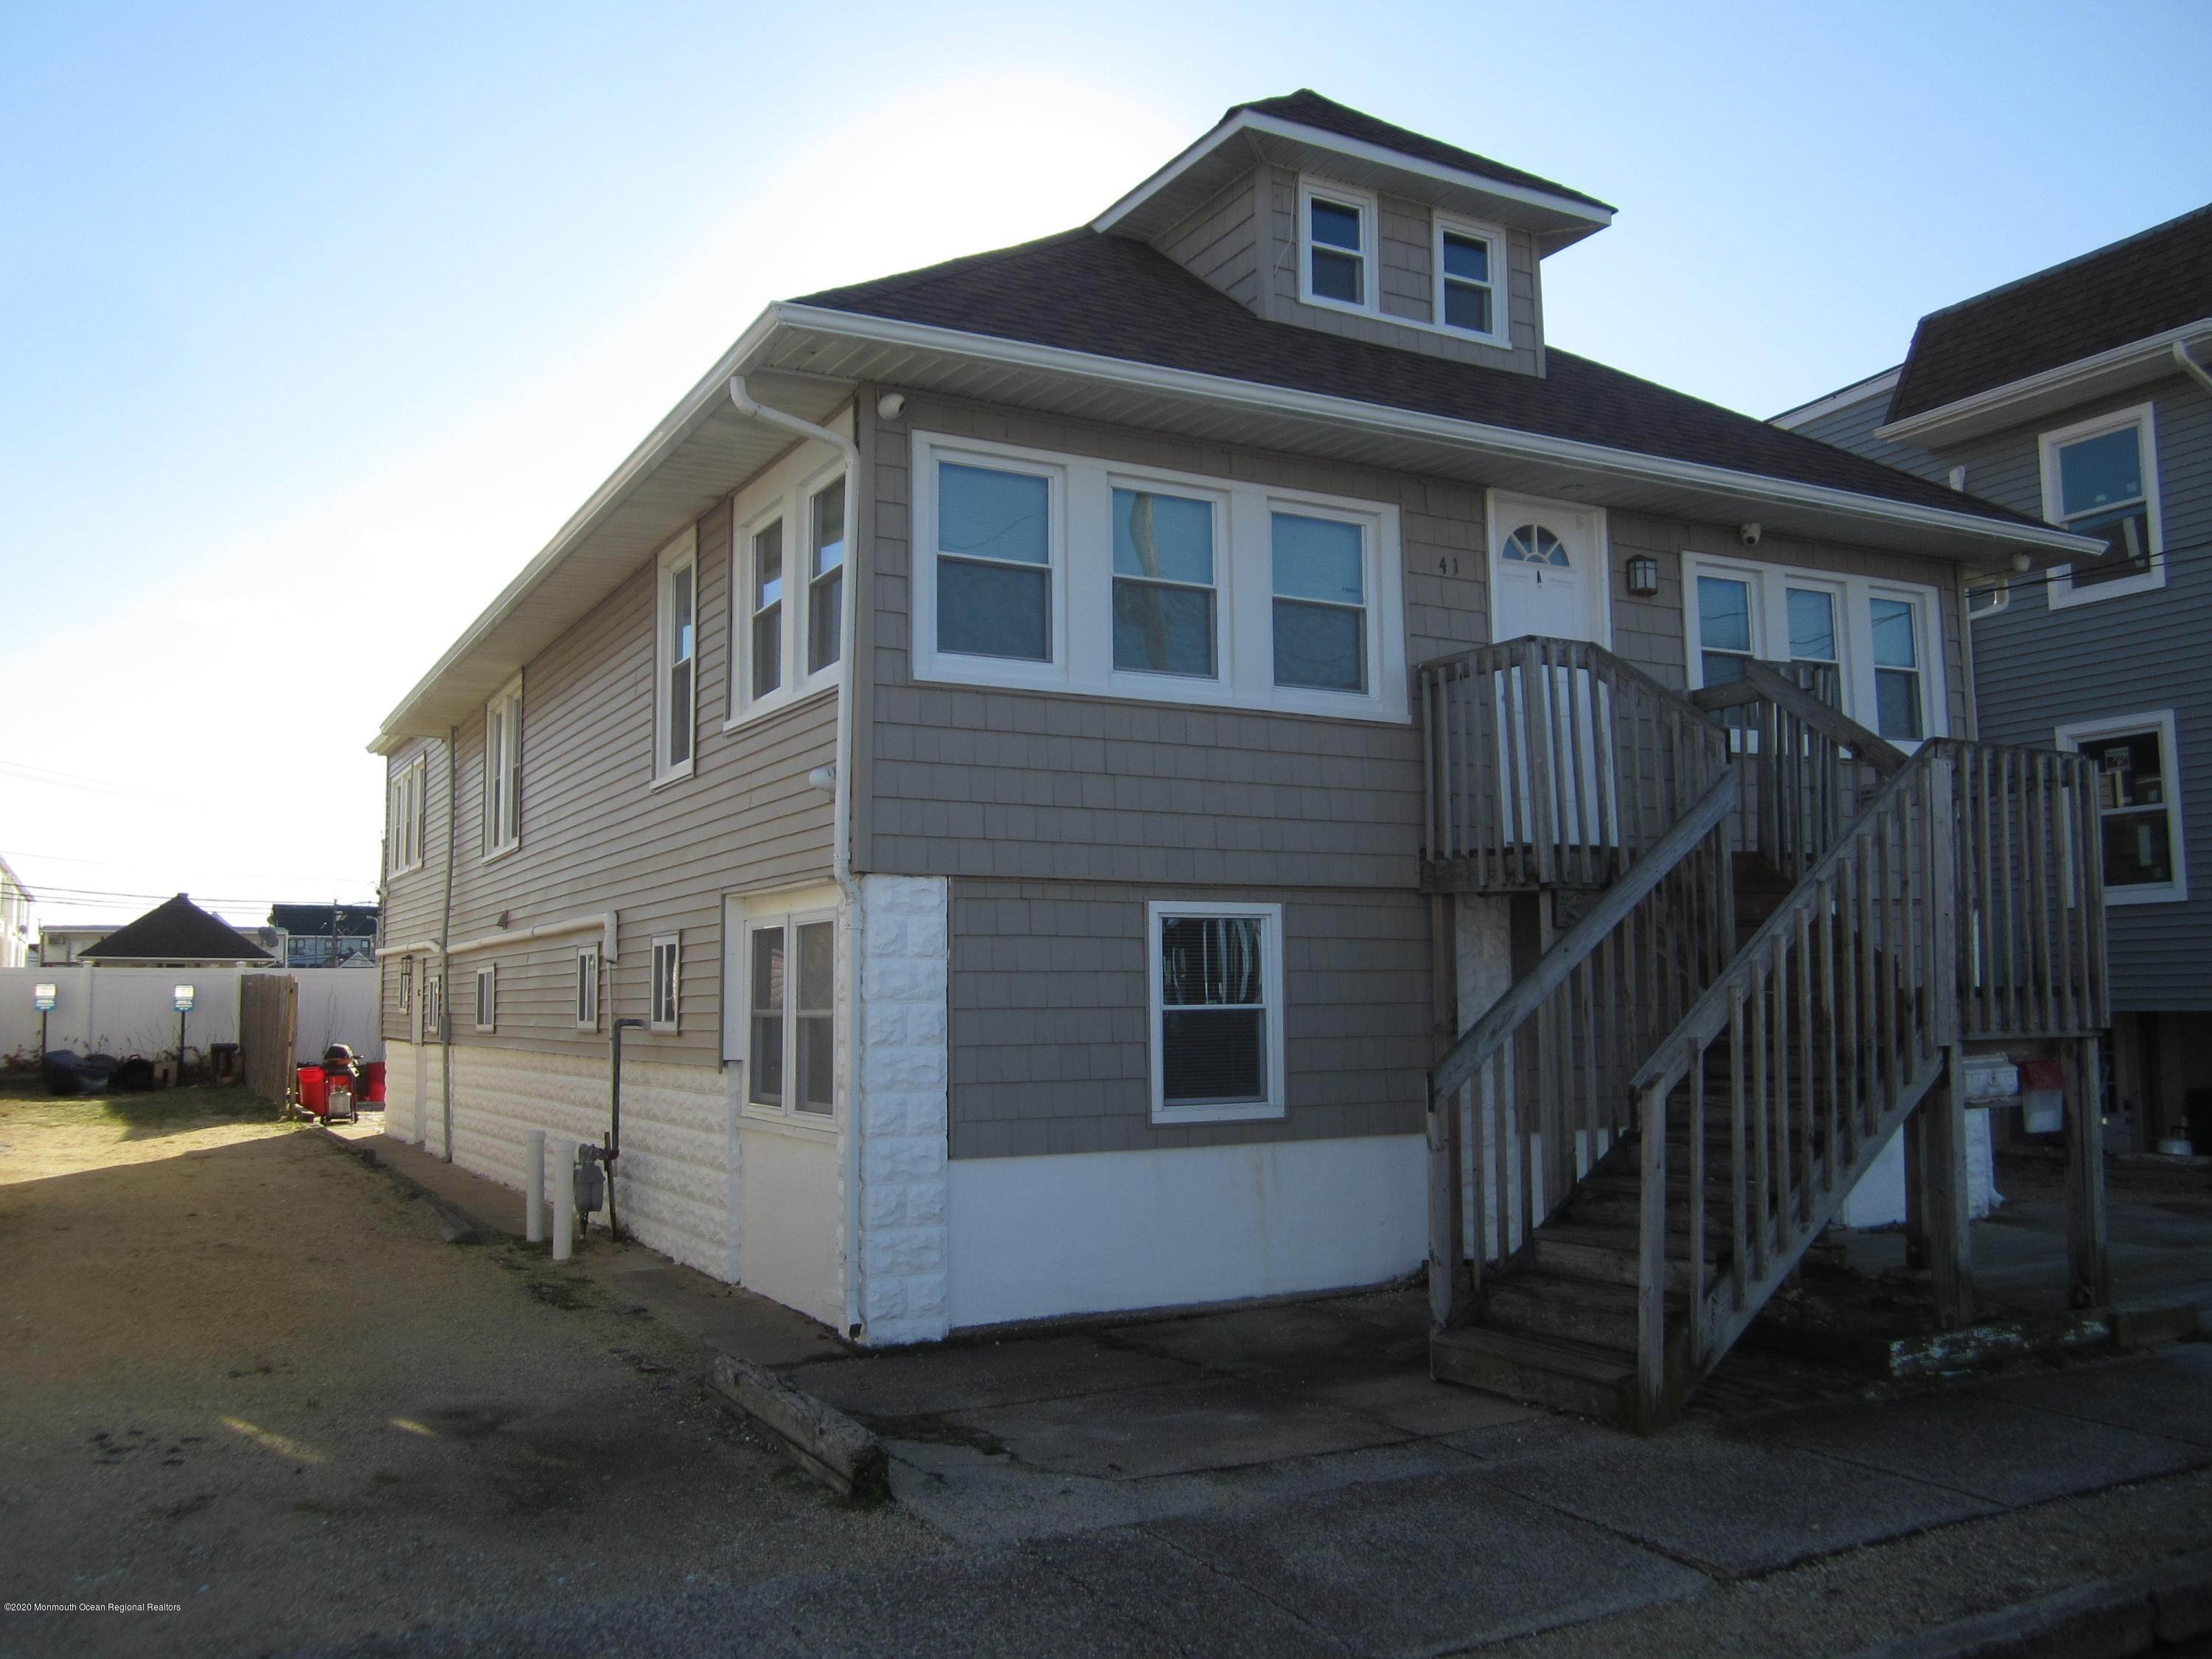 Multi-Family Homes for Sale at 41 Blaine Avenue Seaside Heights, New Jersey 08751 United States